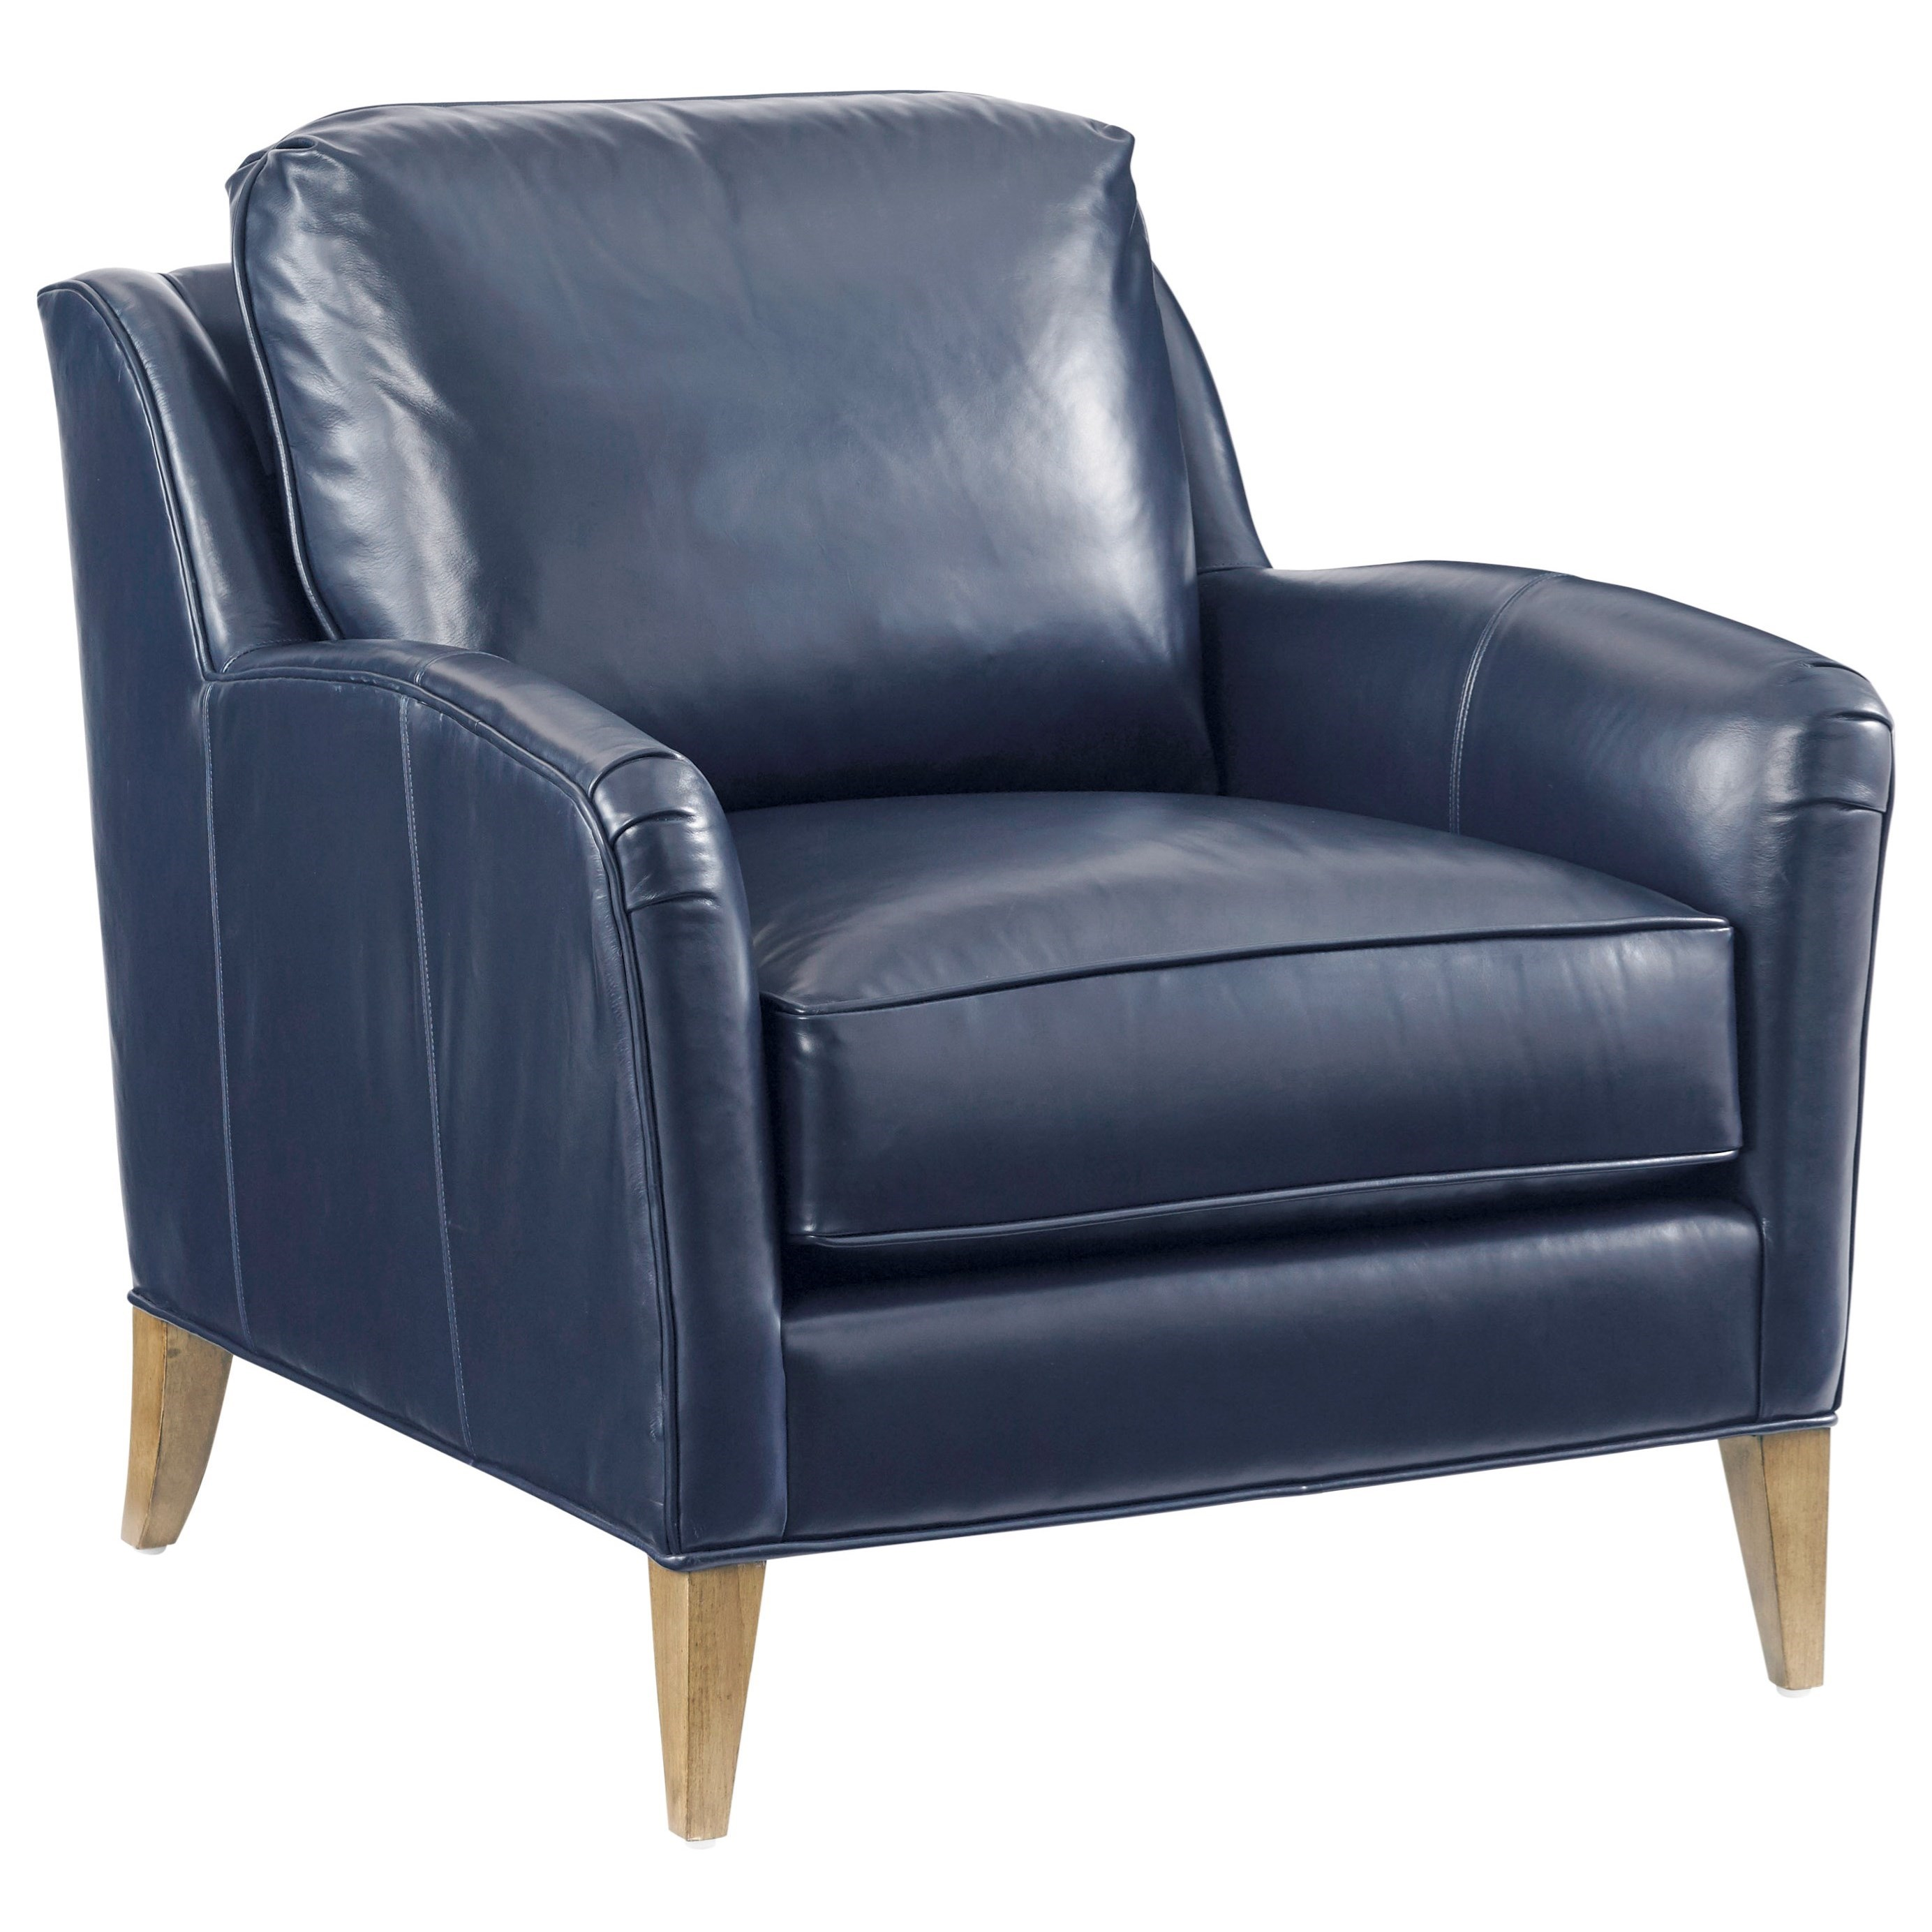 Twin Palms Coconut Grove Chair by Tommy Bahama Home at Baer's Furniture